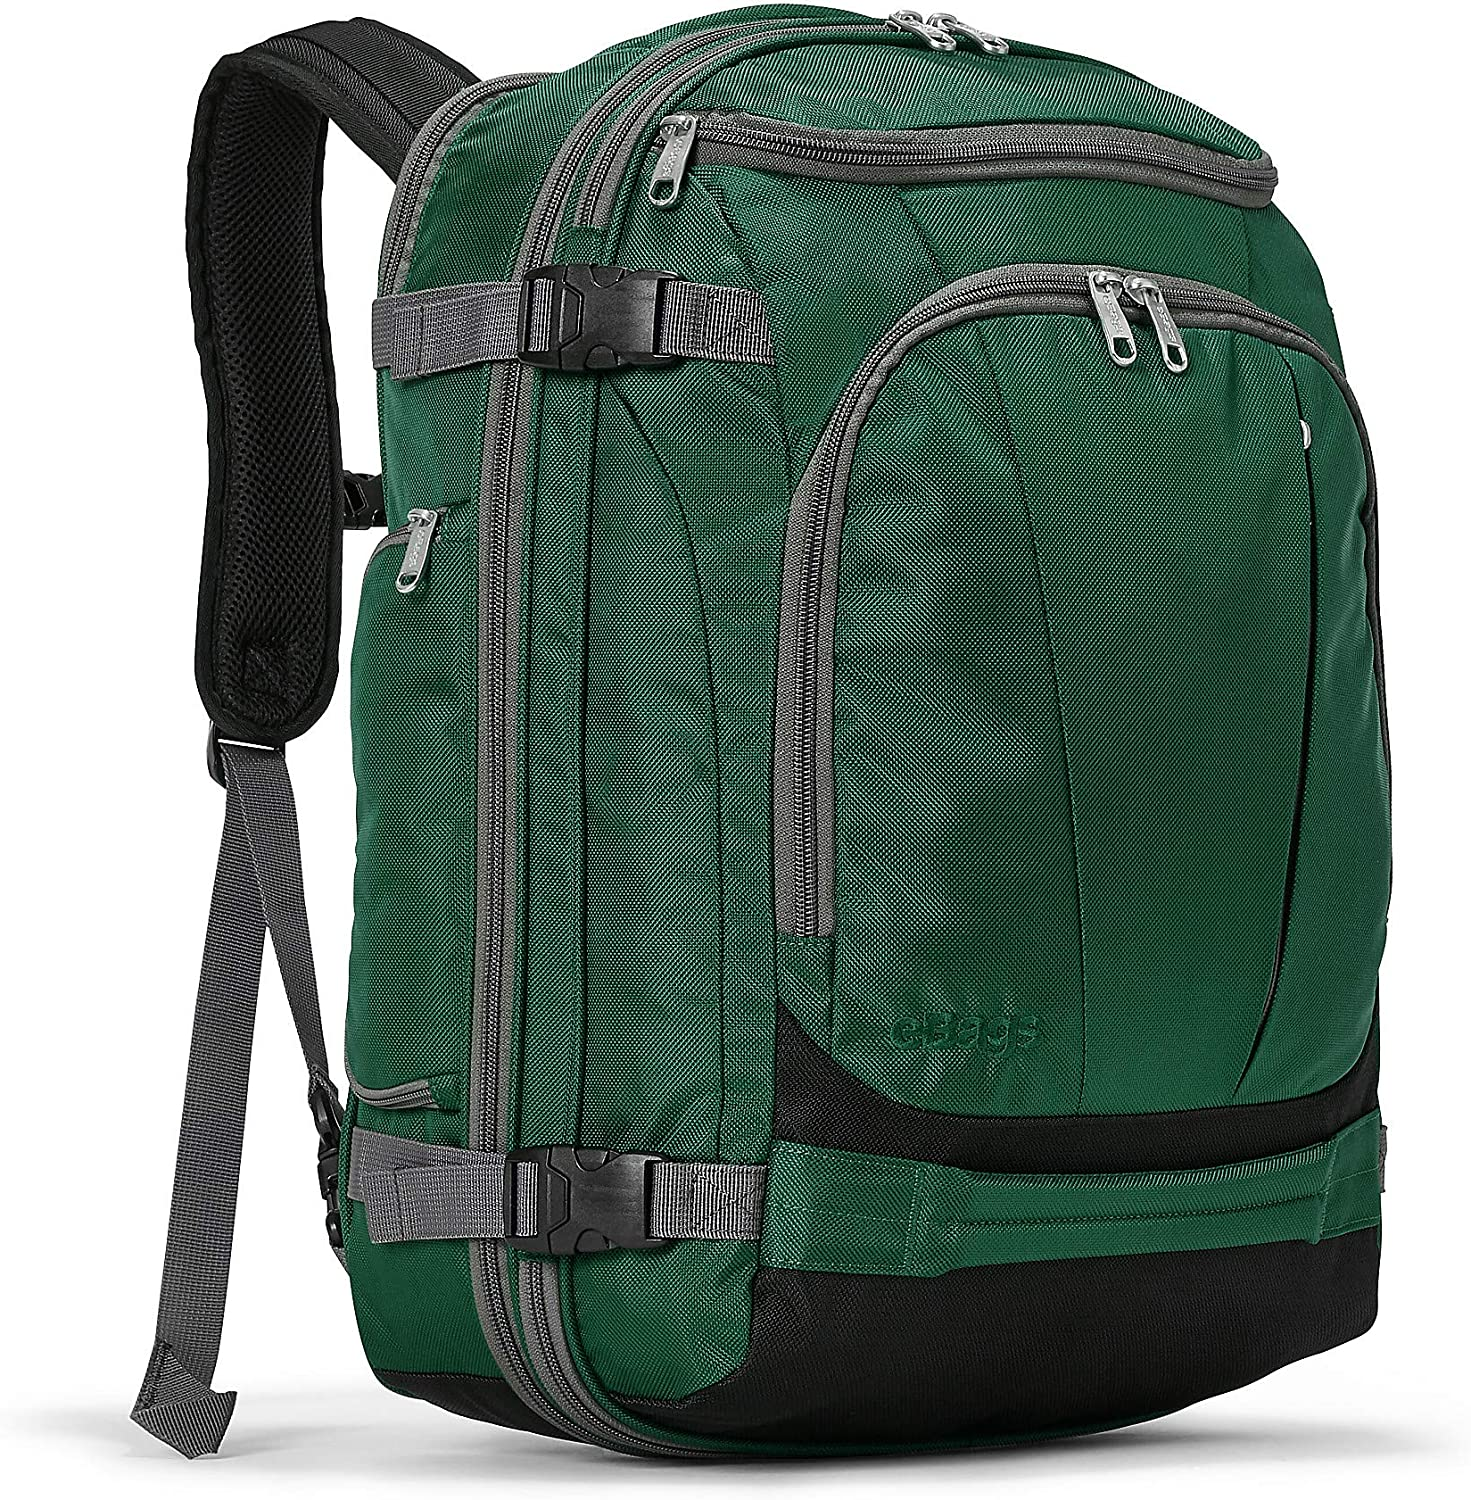 eBags Mother Lode Jr Travel Backpack (Emerald (Limited Edition))